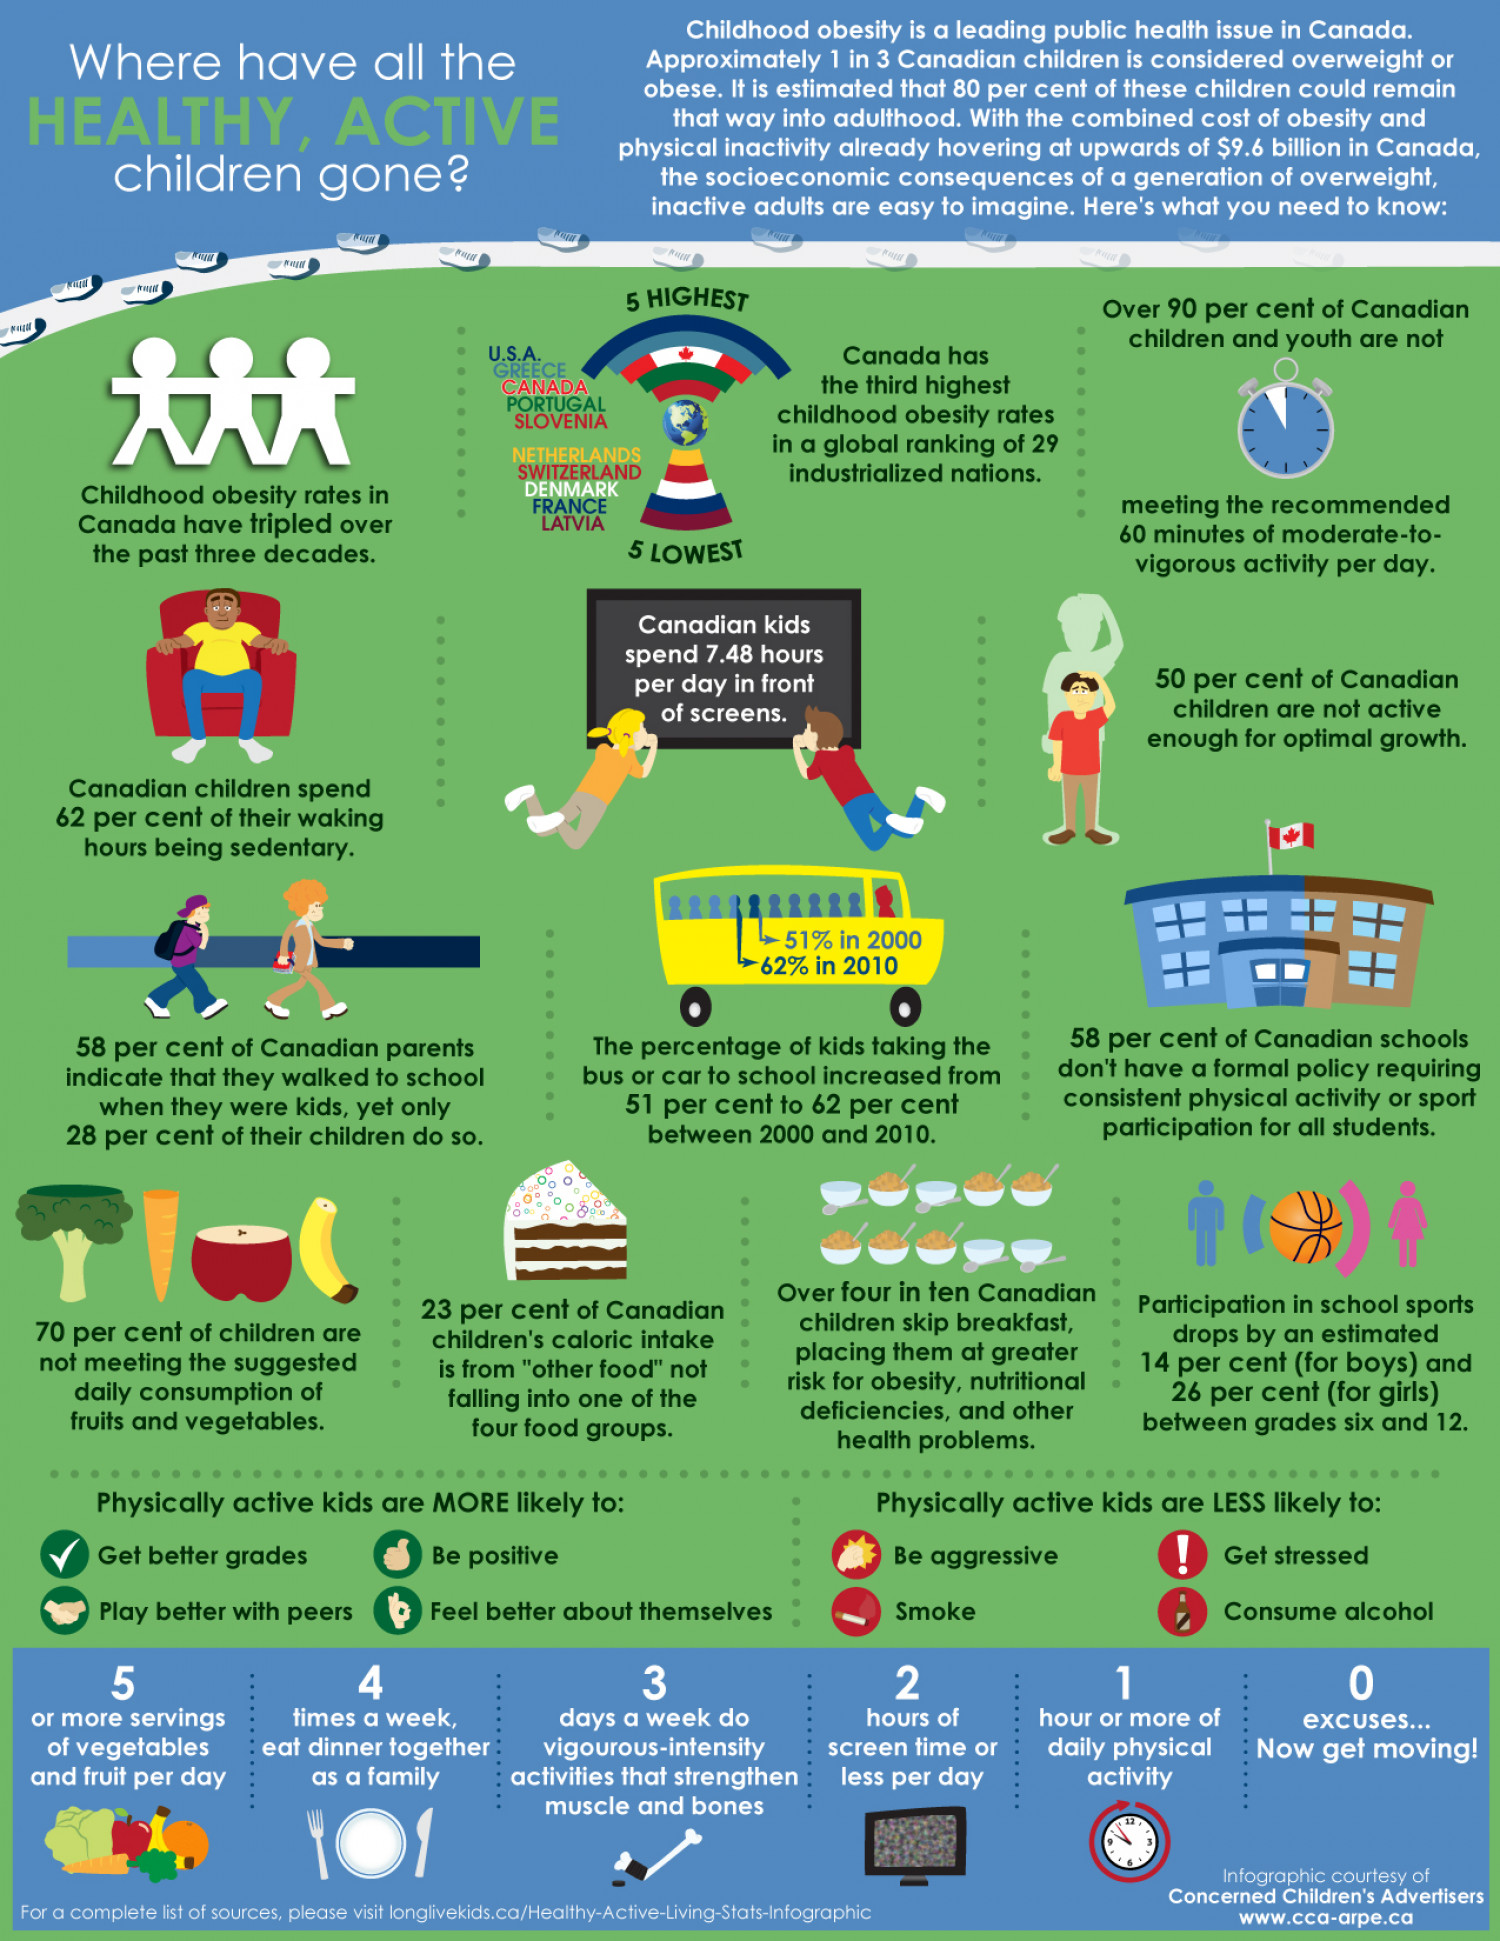 Where Have All the Healthy, Active Children Gone? Infographic